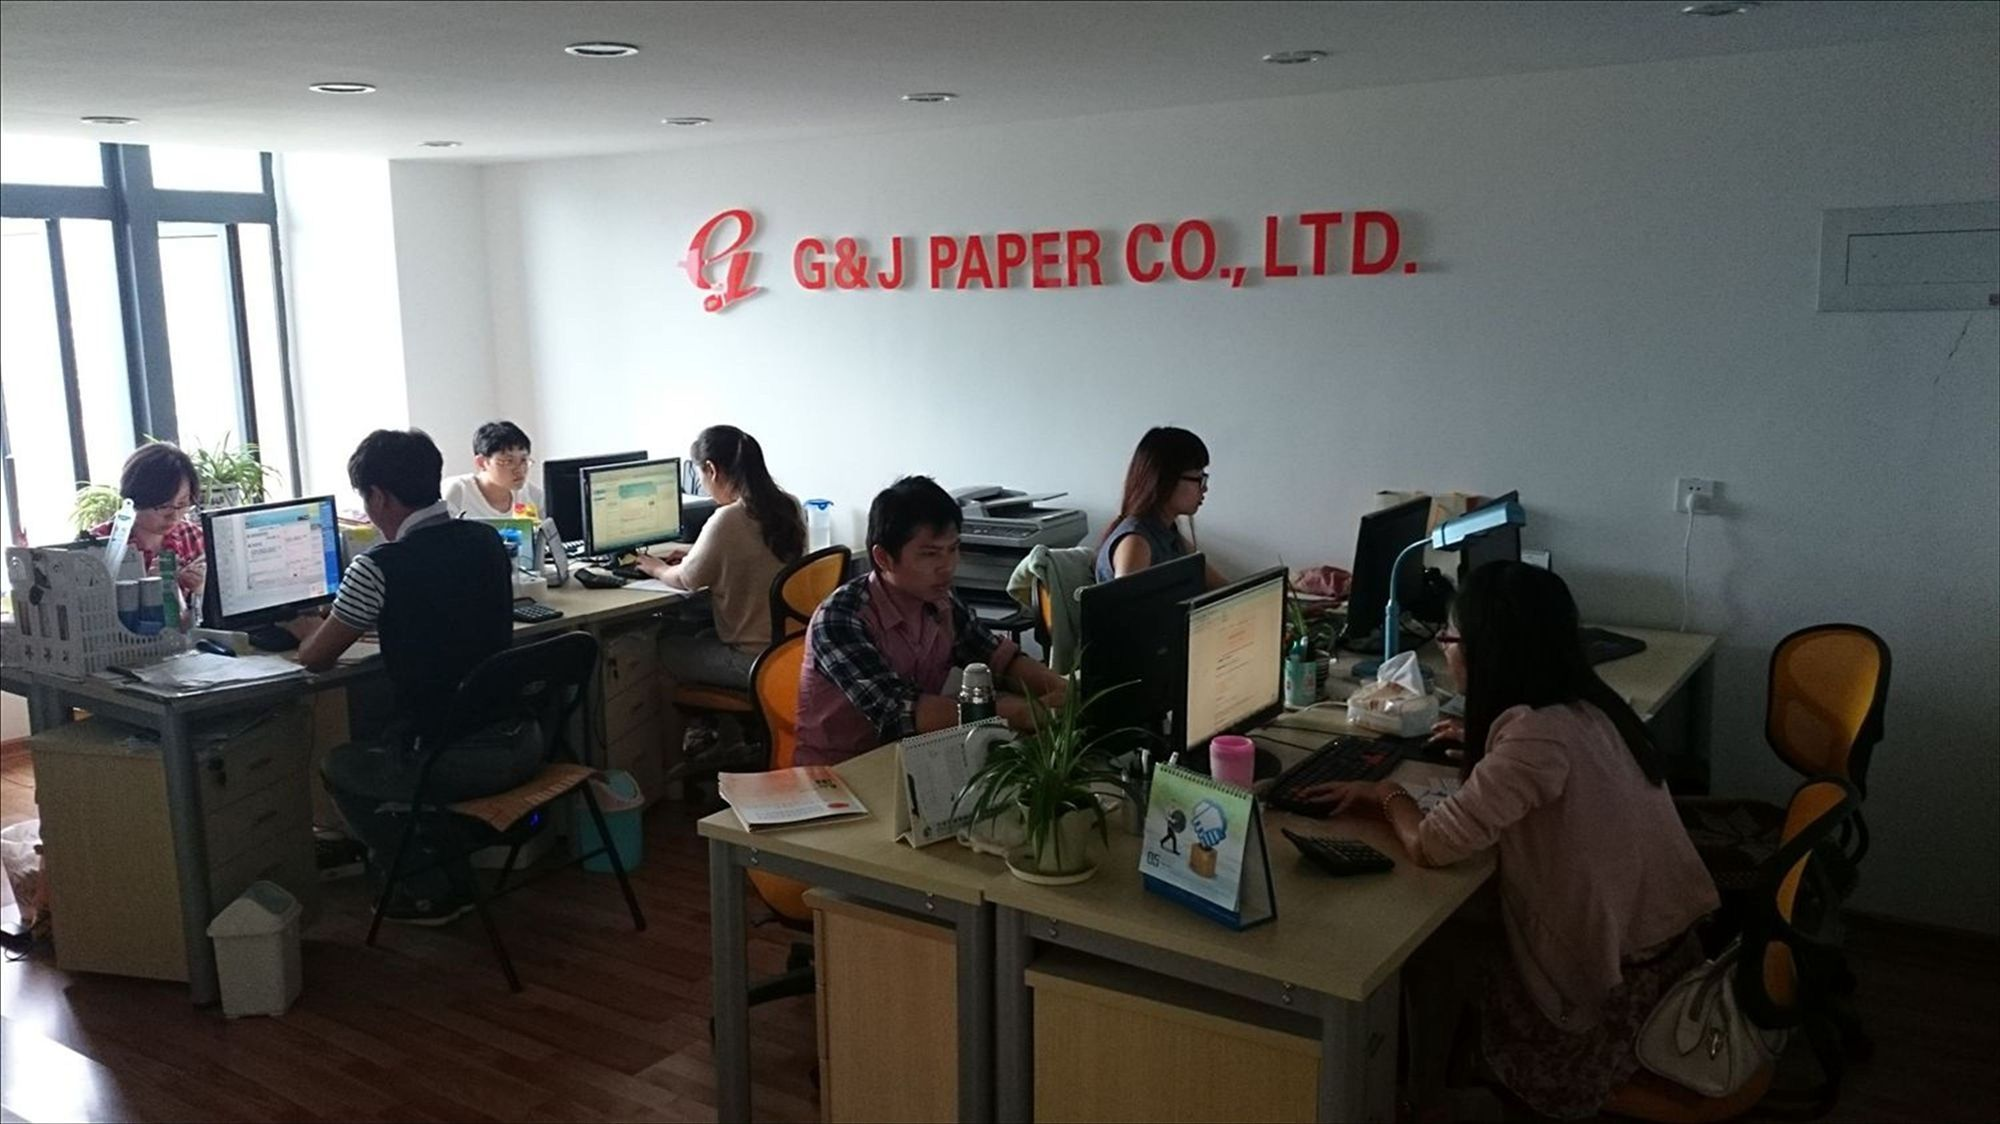 Office show of G&J PAPER